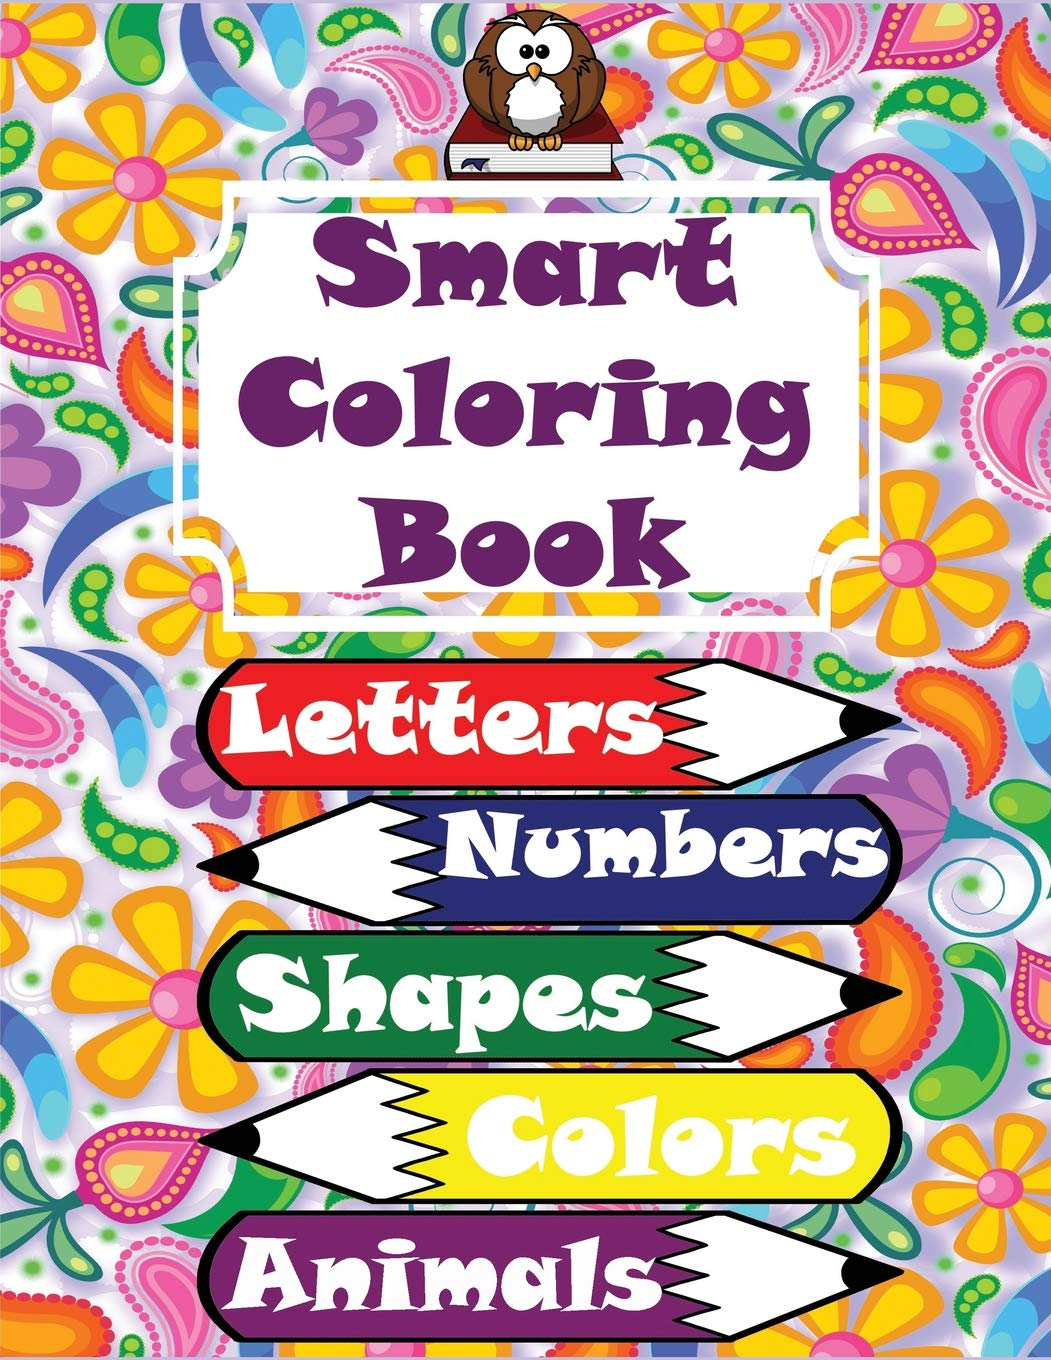 Smart Coloring Book 117 Pages Letters Alphabet Numbers Shapes Colors Animals Clothing Vegetables And Fruits Super Coloring Book Rainbow 9781717744401 Amazon Com Books